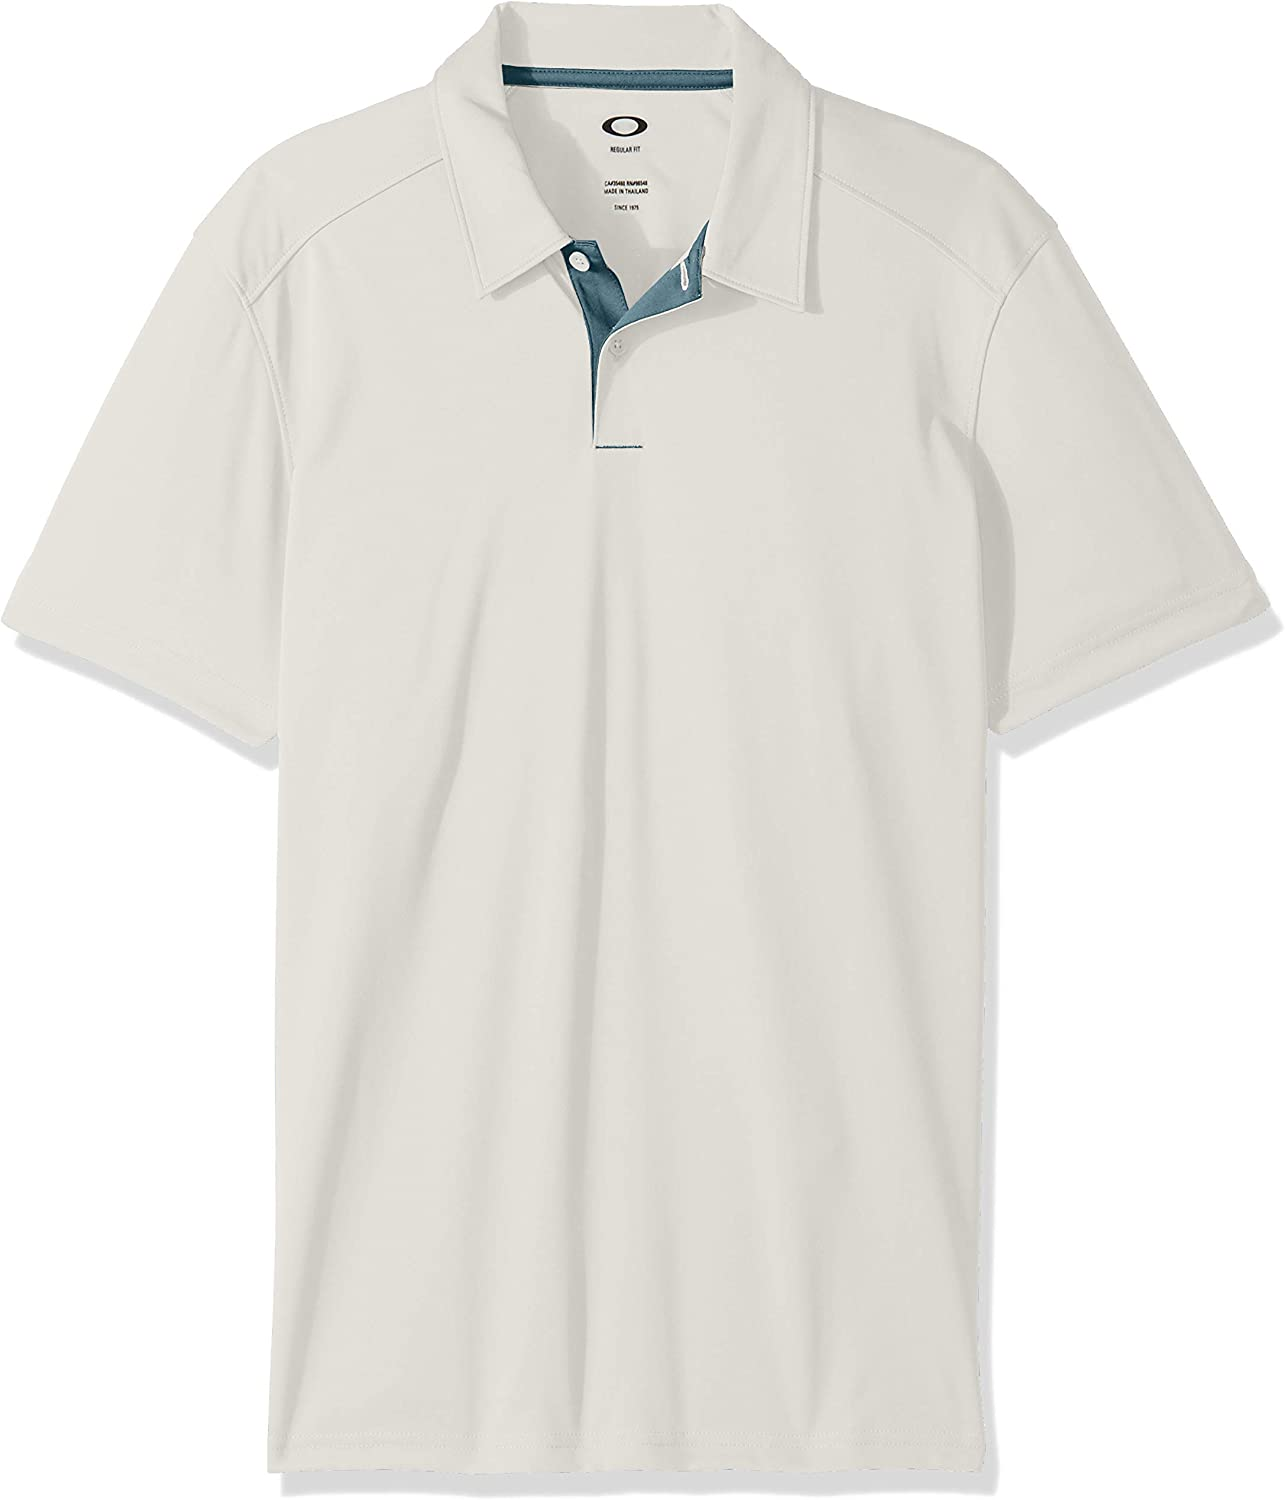 Oakley Men's Divisonal Polo: Clothing